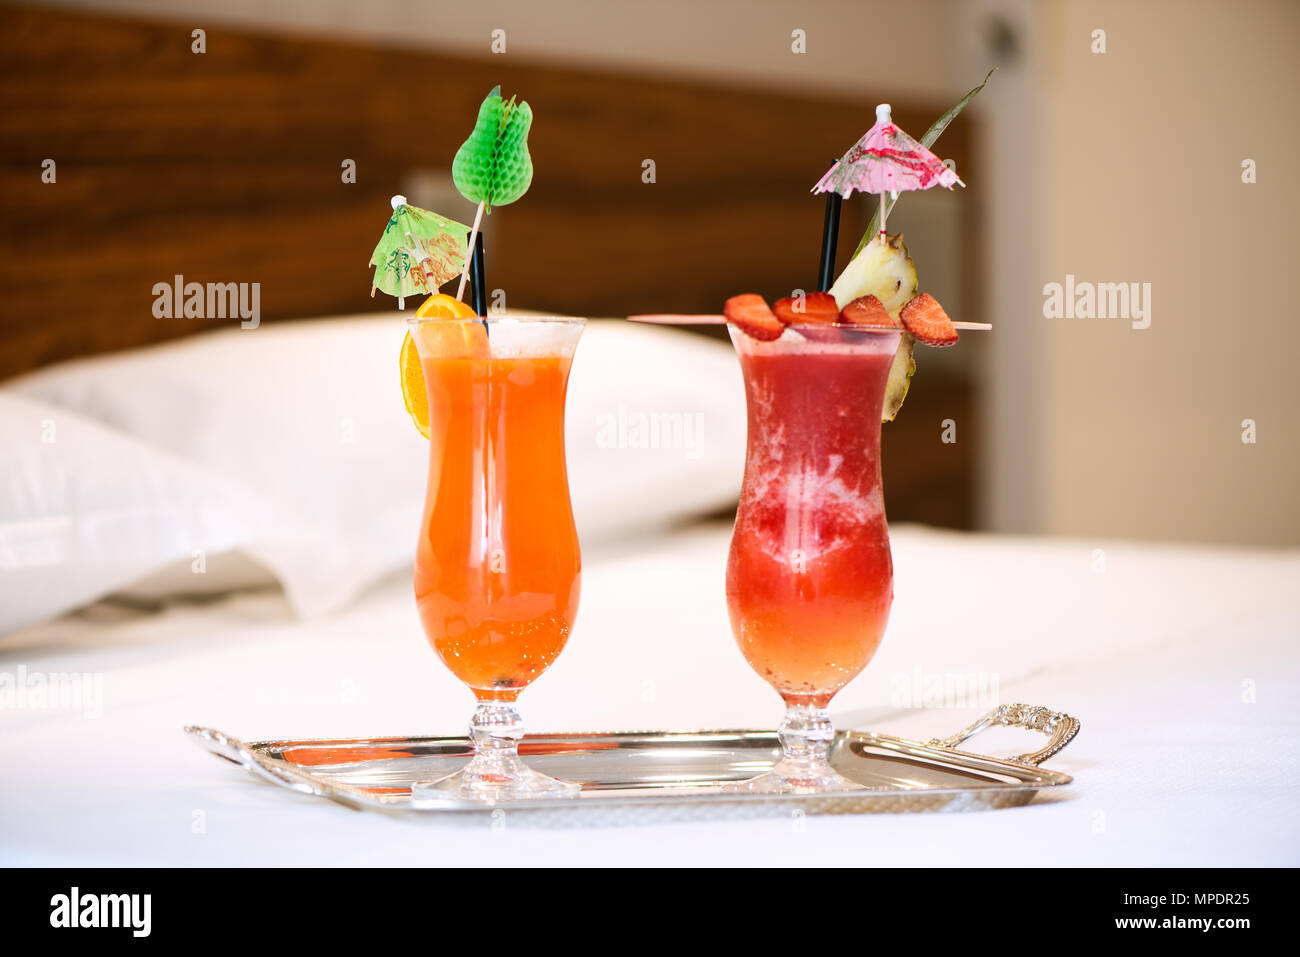 Two drinks on bed room hotel - Stock Image